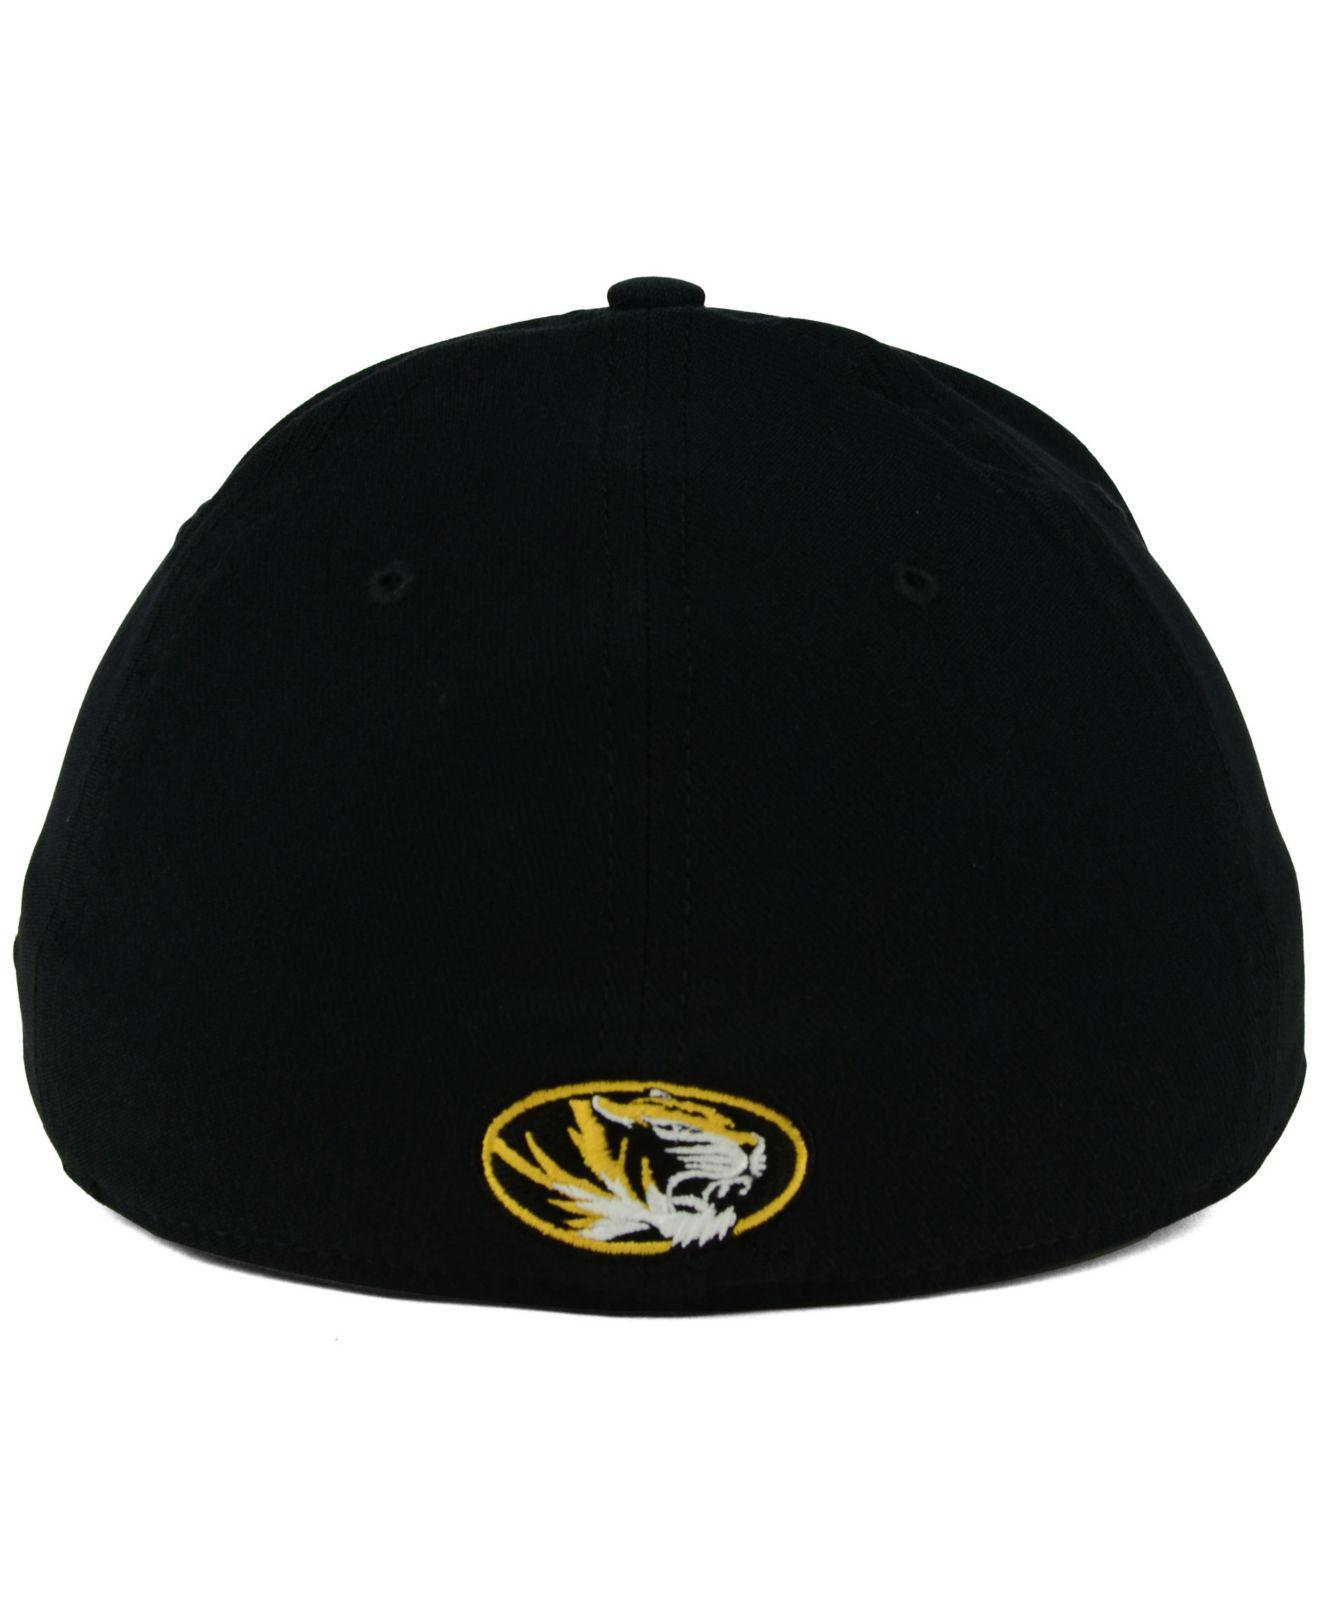 92956d1a ... germany nike black missouri tigers classic swoosh cap for men lyst.  view fullscreen 65a97 5c274